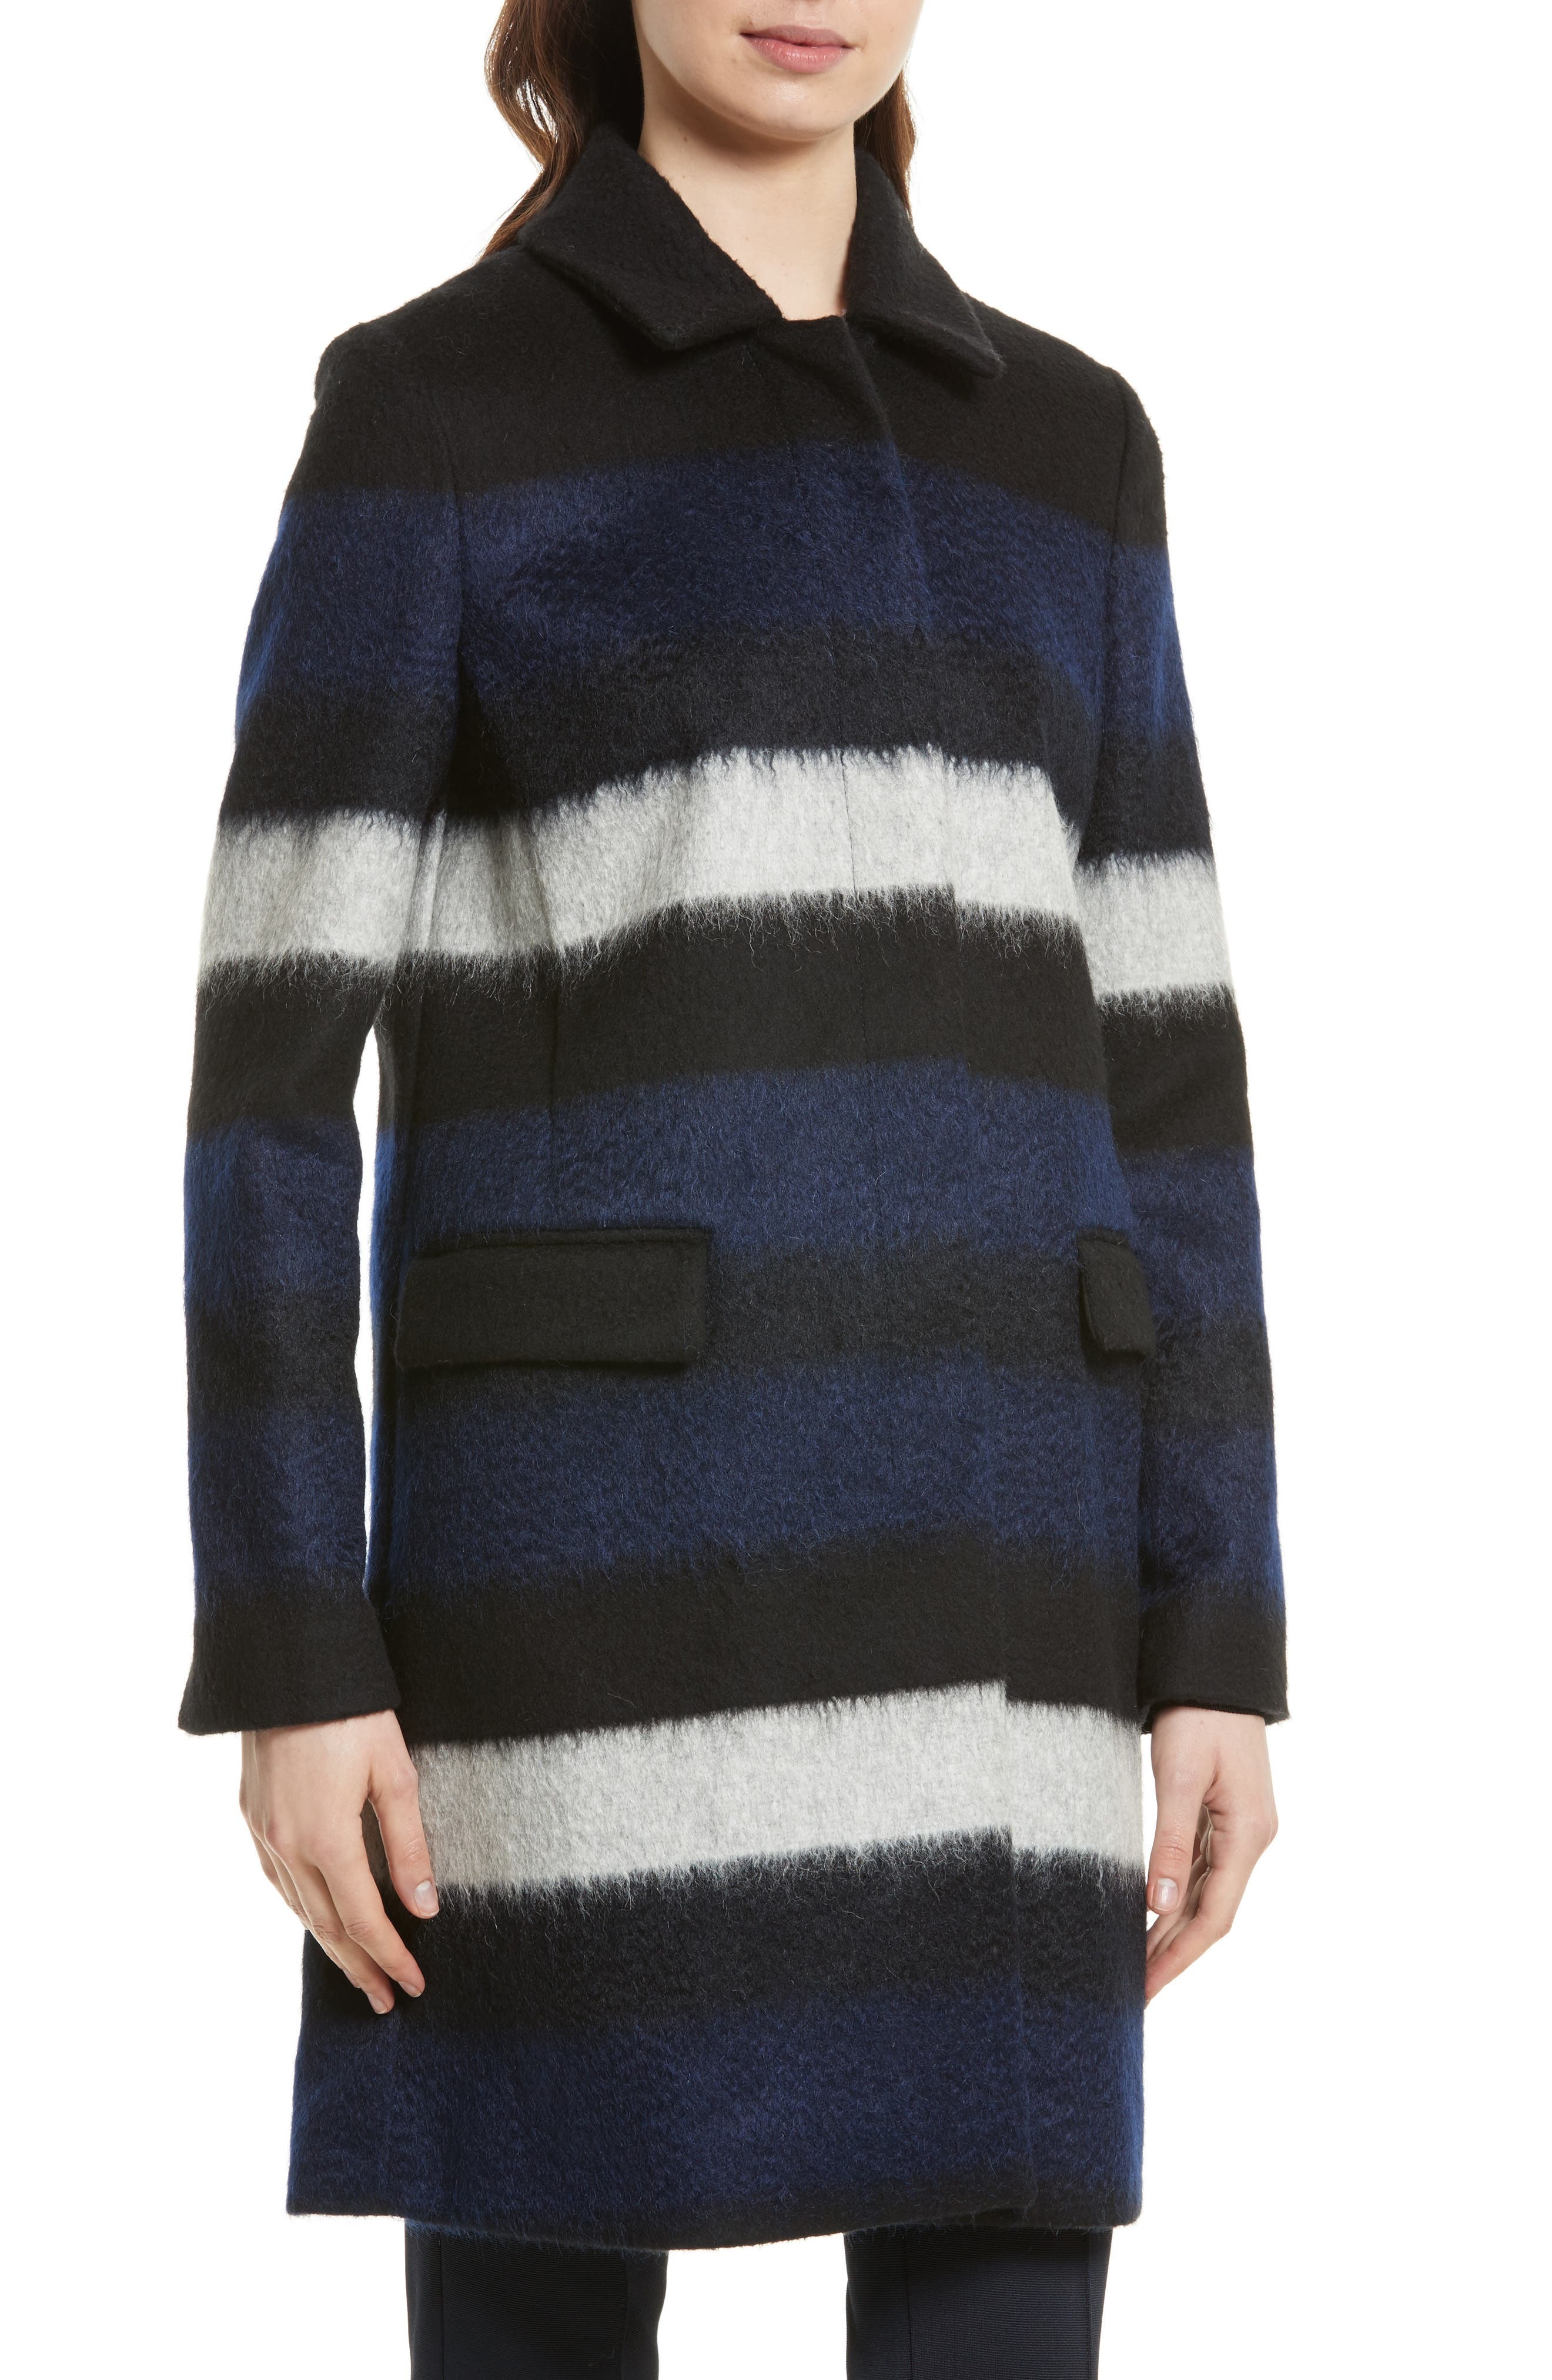 Stripe Wool Blend Coat,                             Alternate thumbnail 4, color,                             Black Multi Stripe